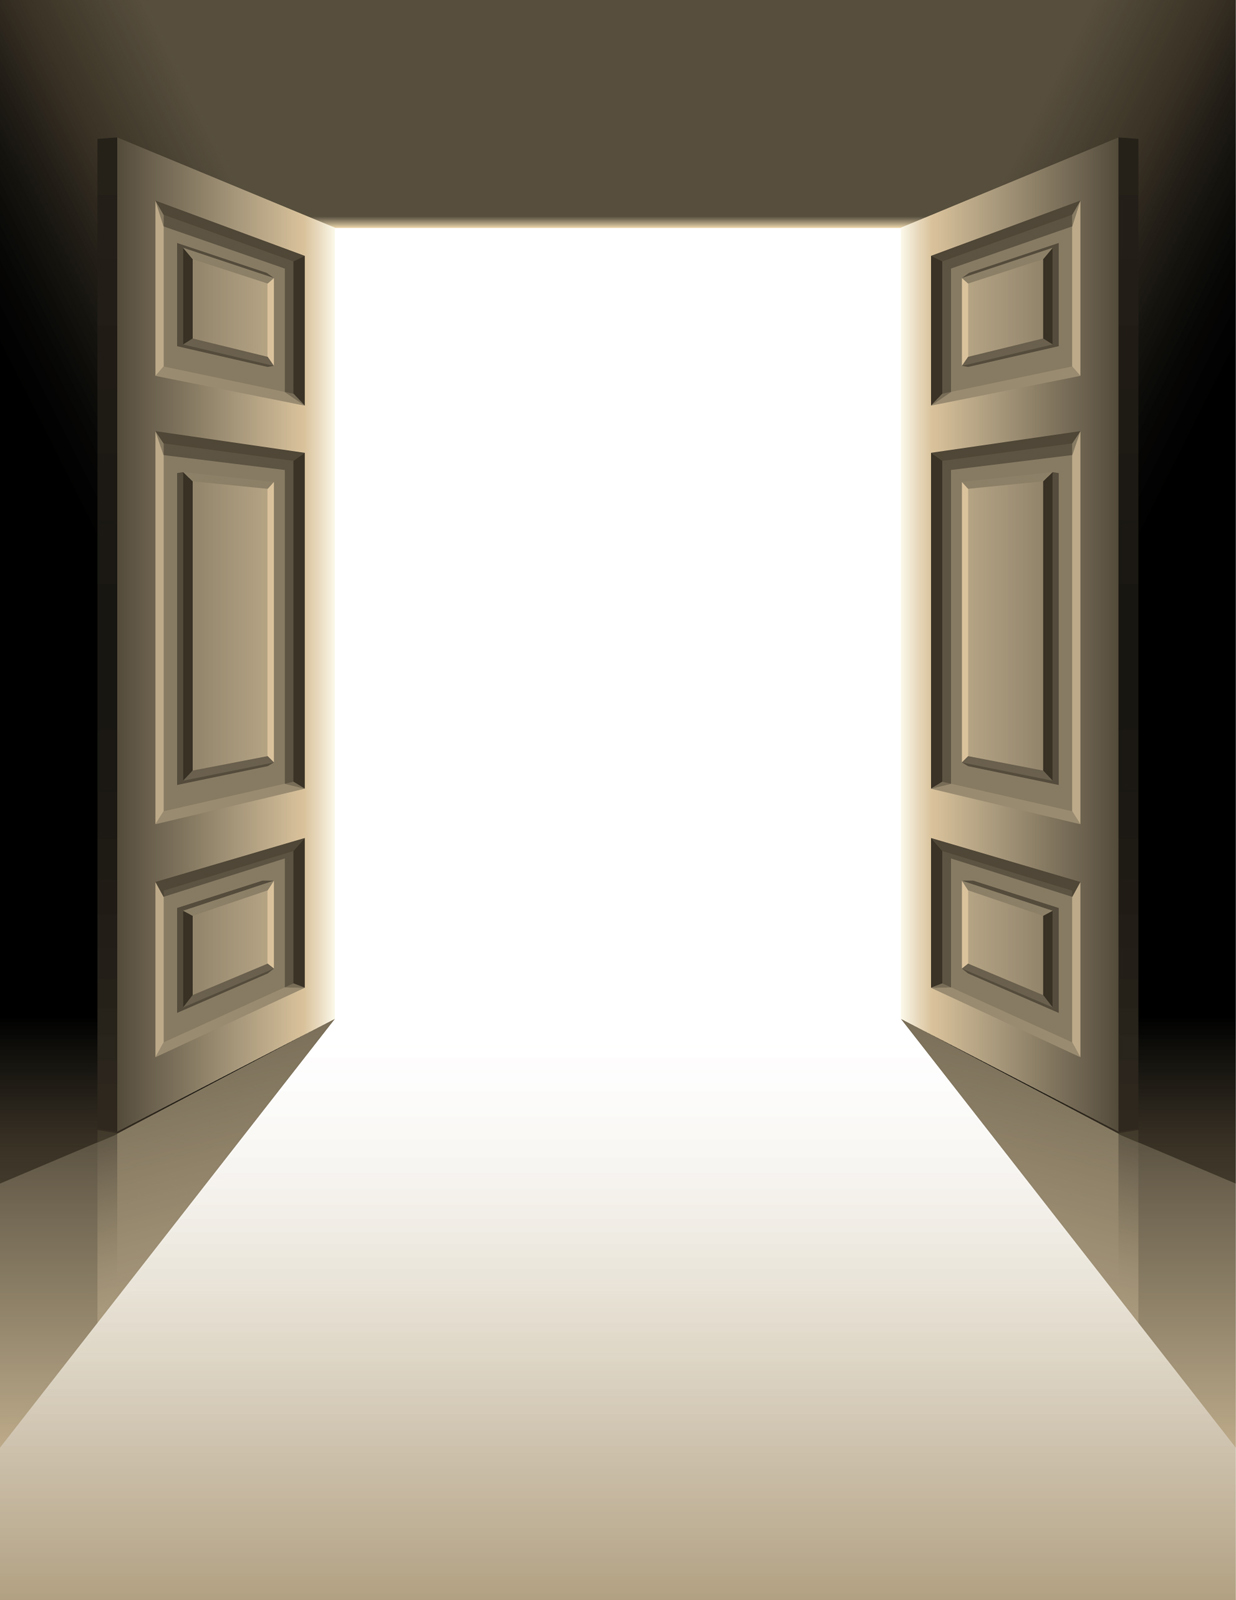 Open door closed door - Open Door Closed Door Moedim Sermons 27 December 2012 Unanswered And Picture